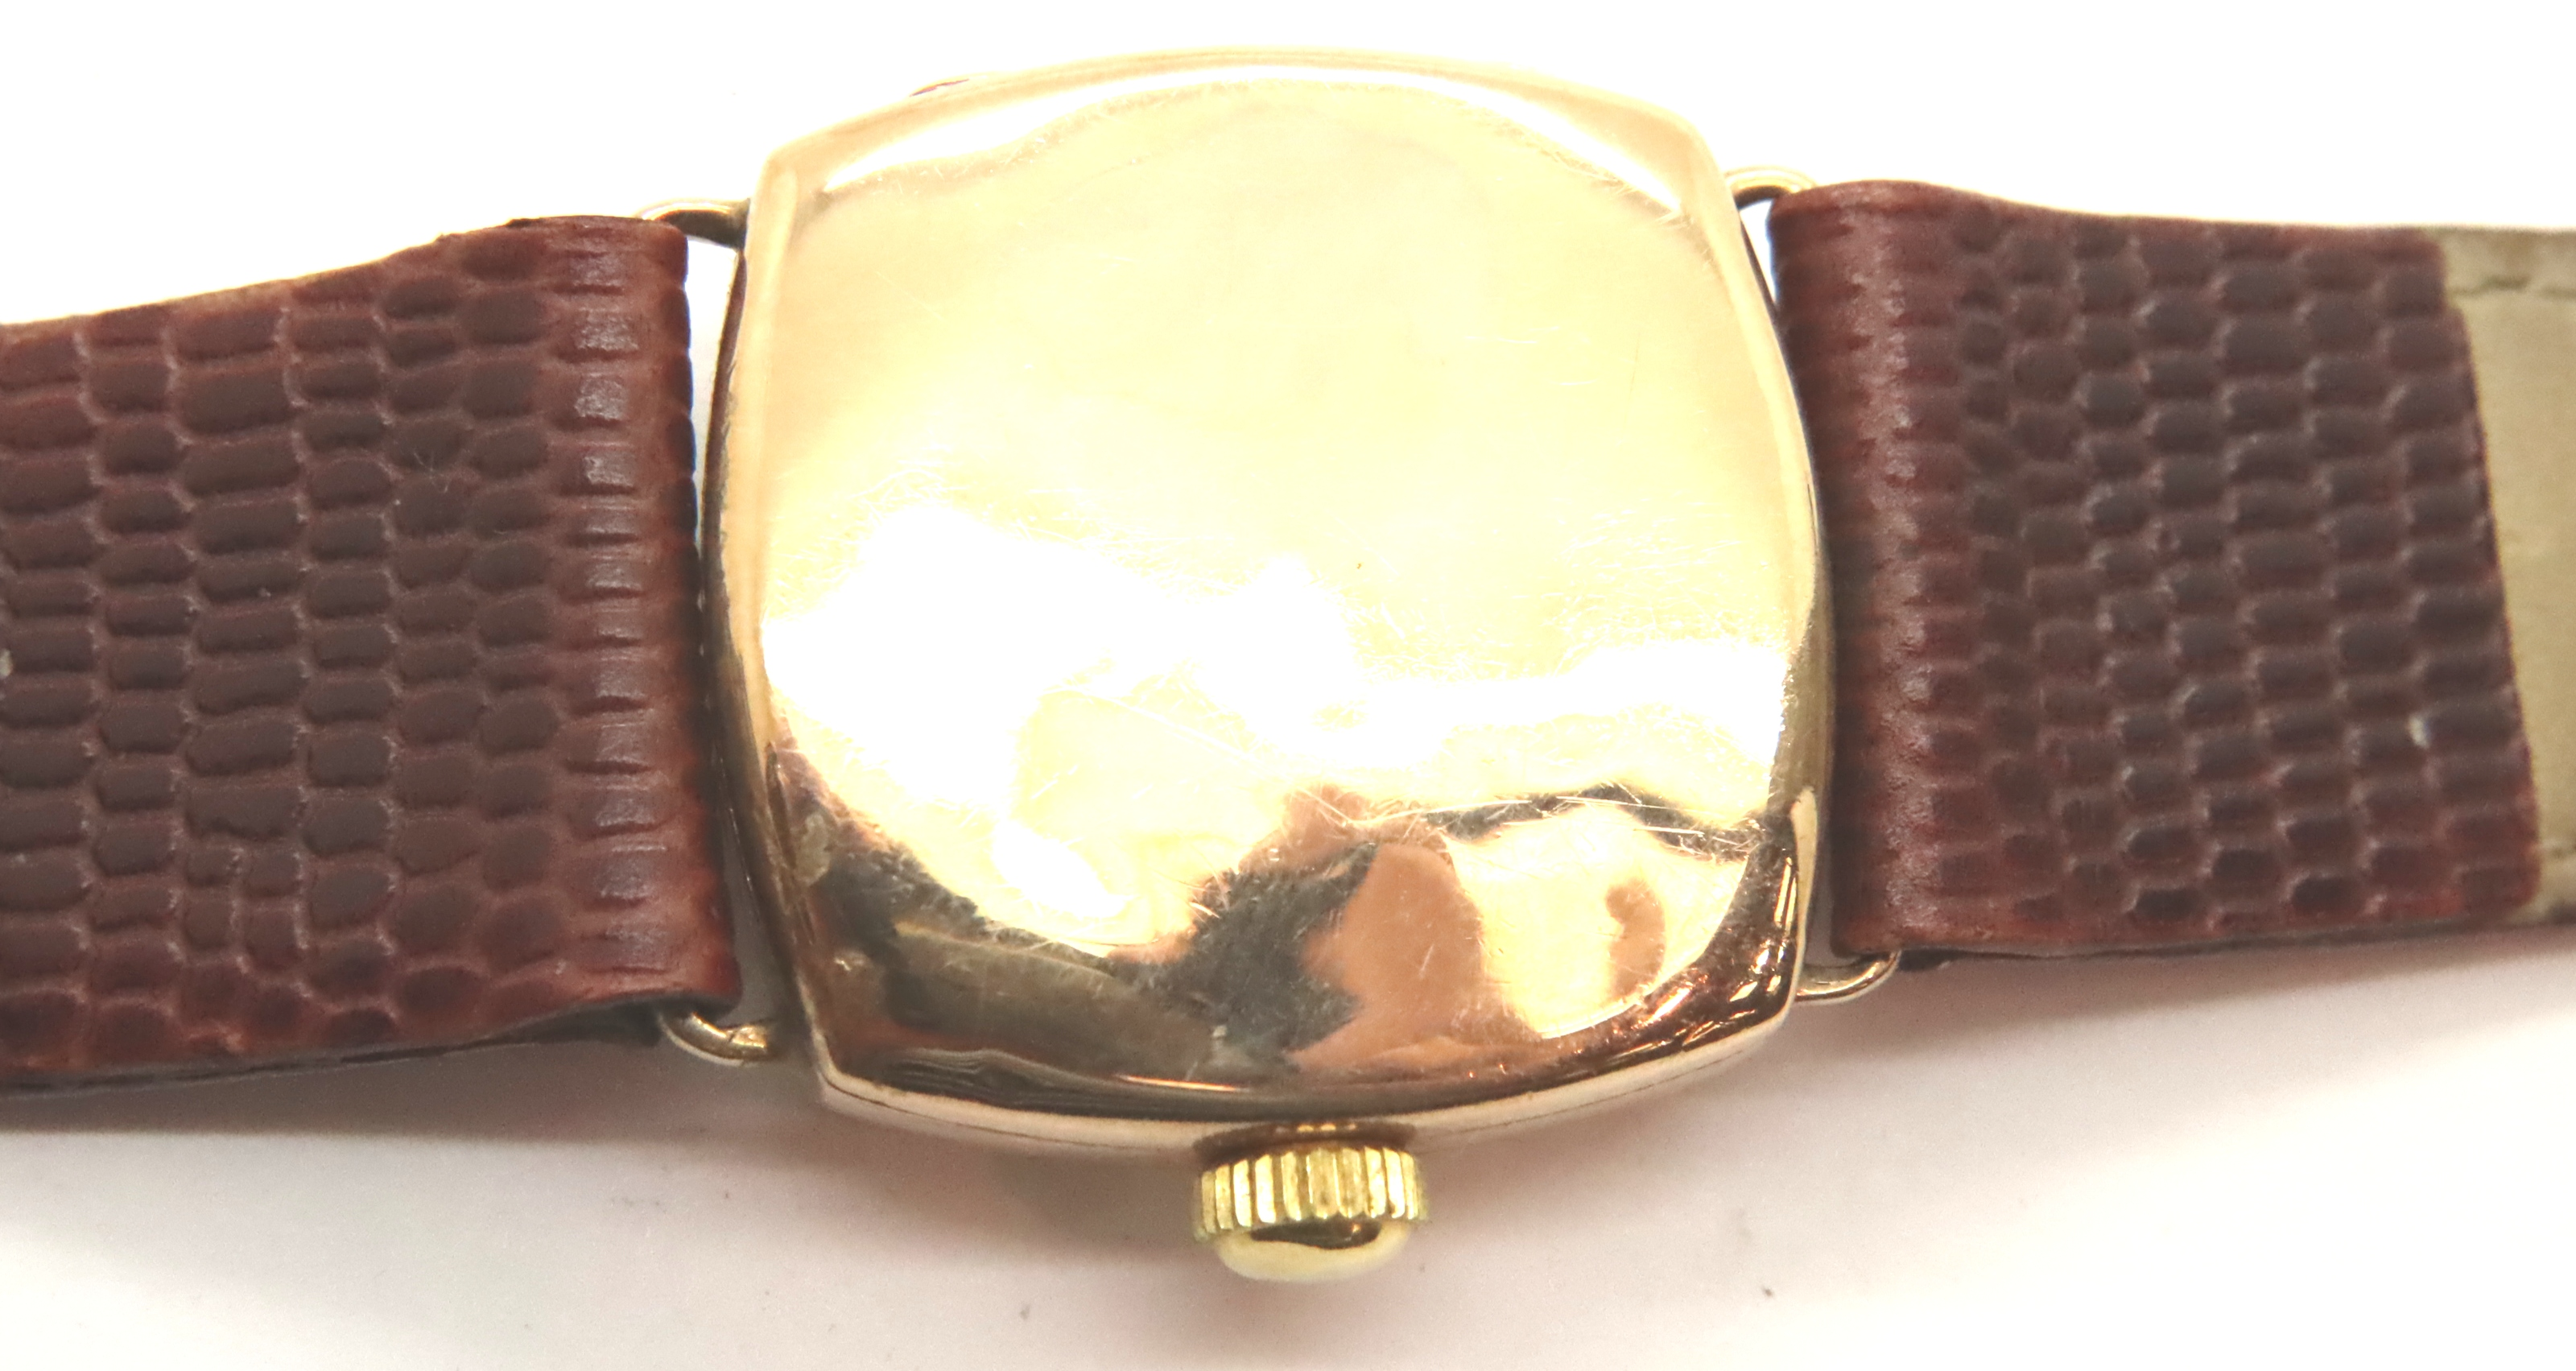 1950s 9ct gold Rolex wristwatch on leather strap in working order. P&P Group 1 (£14+VAT for the - Image 2 of 2